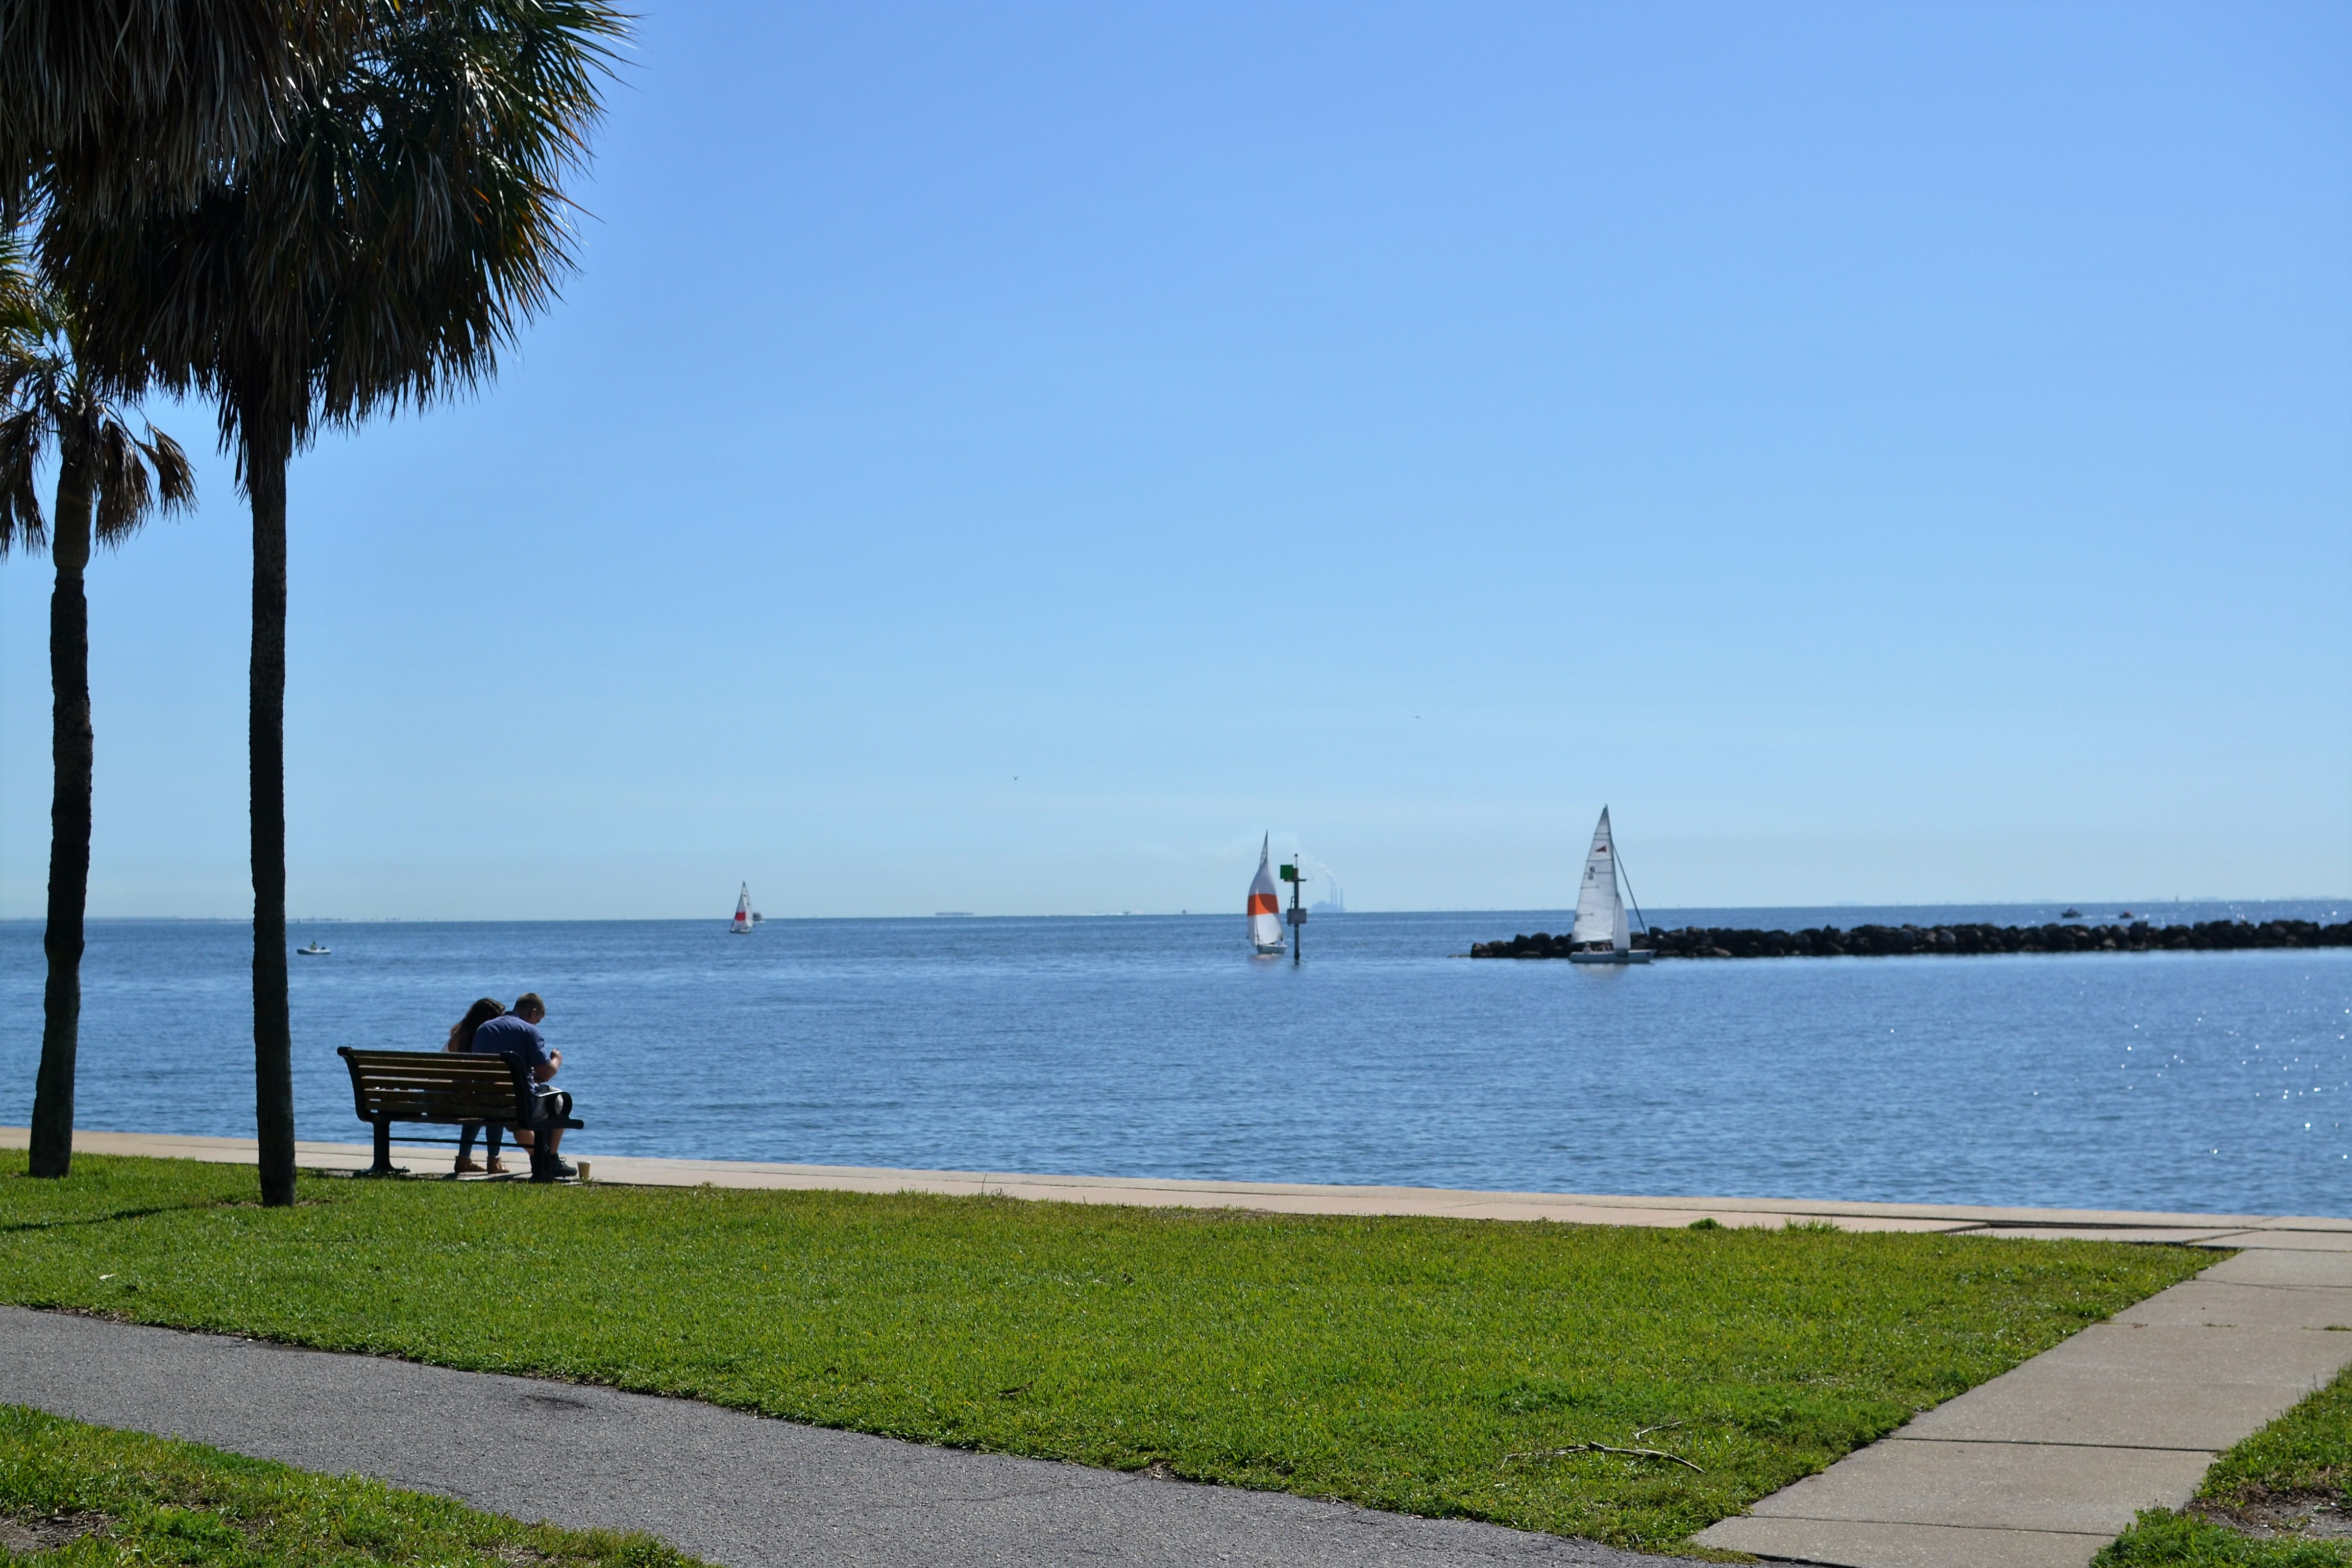 Albert Whitted Park is a beautiful place to take a stroll or bring the family for some play time by the water